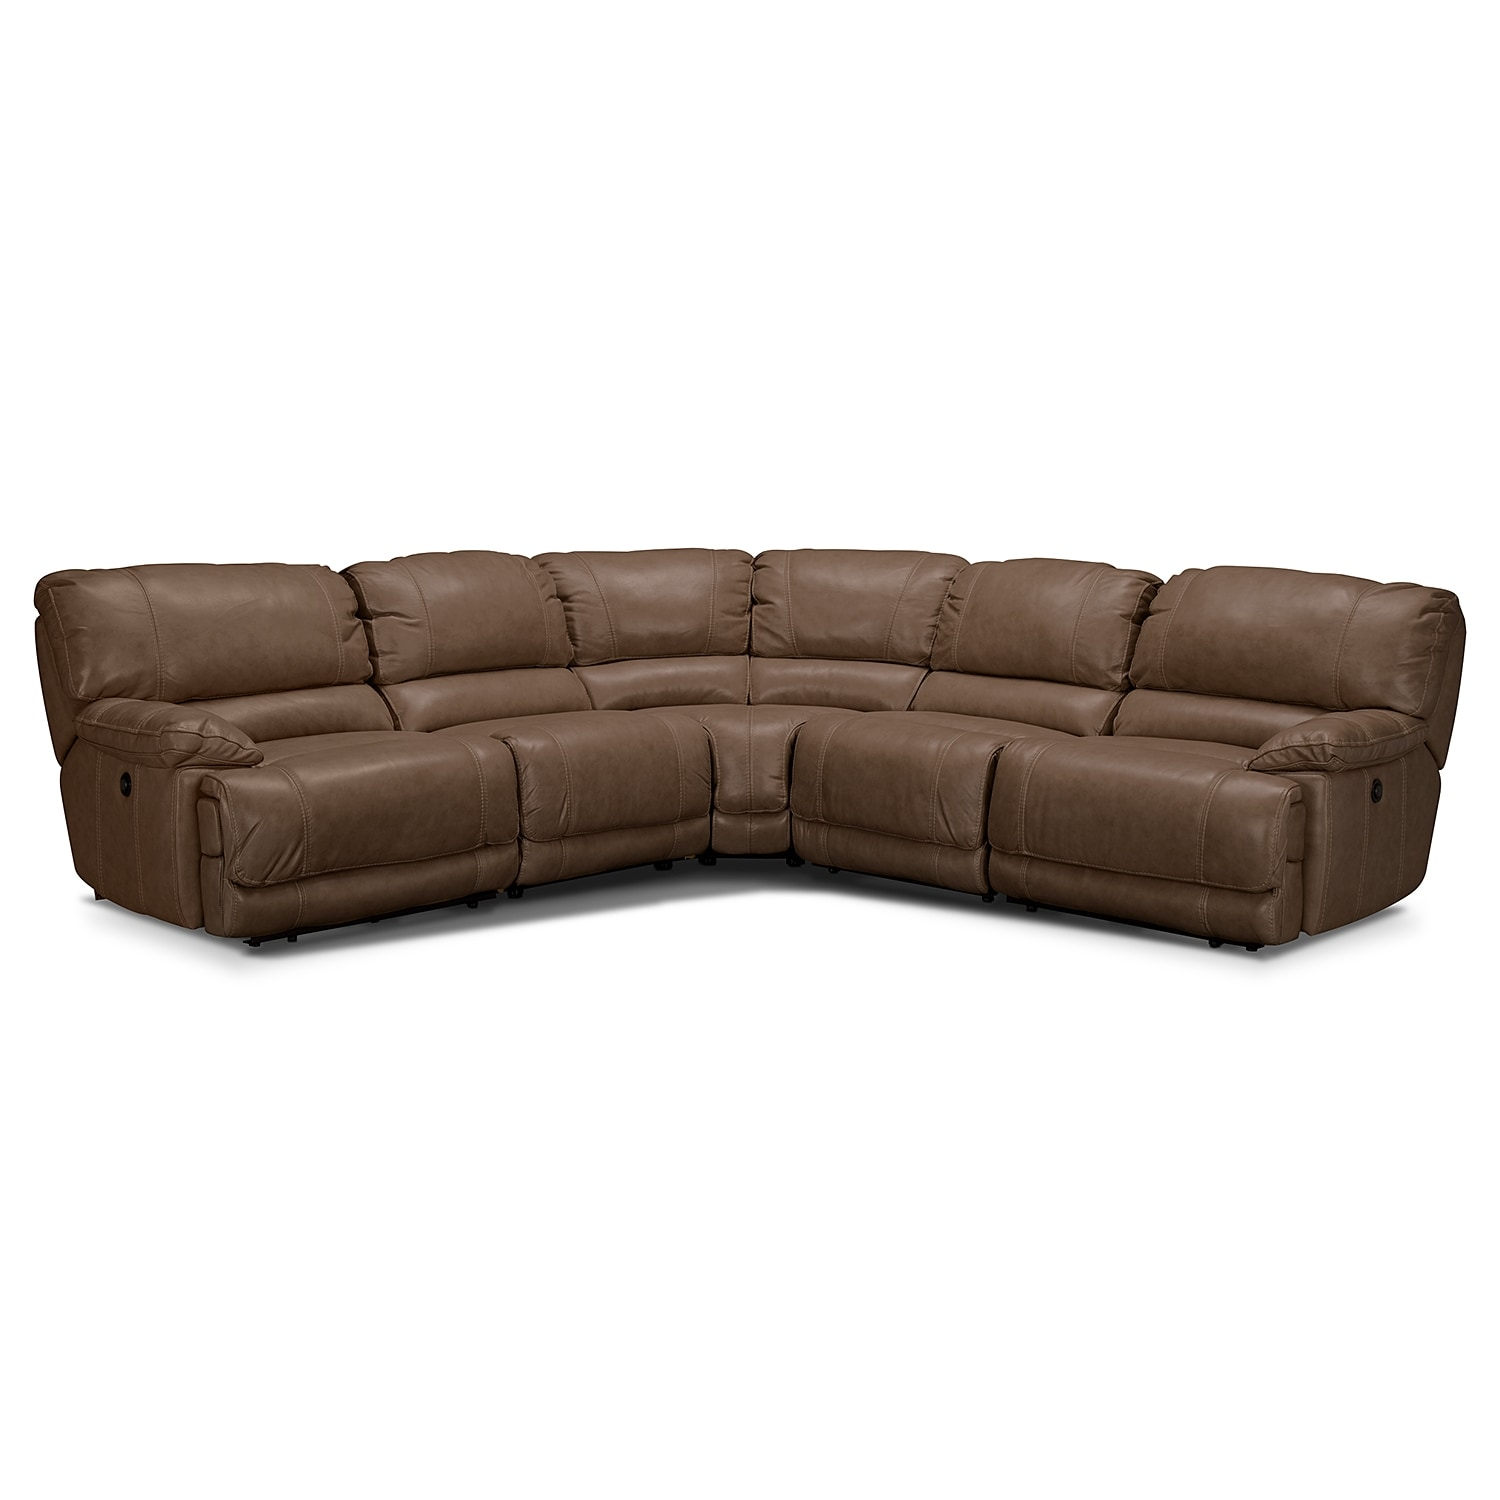 Living Room Furniture - Clinton Taupe 5 Pc. Power Reclining Sectional